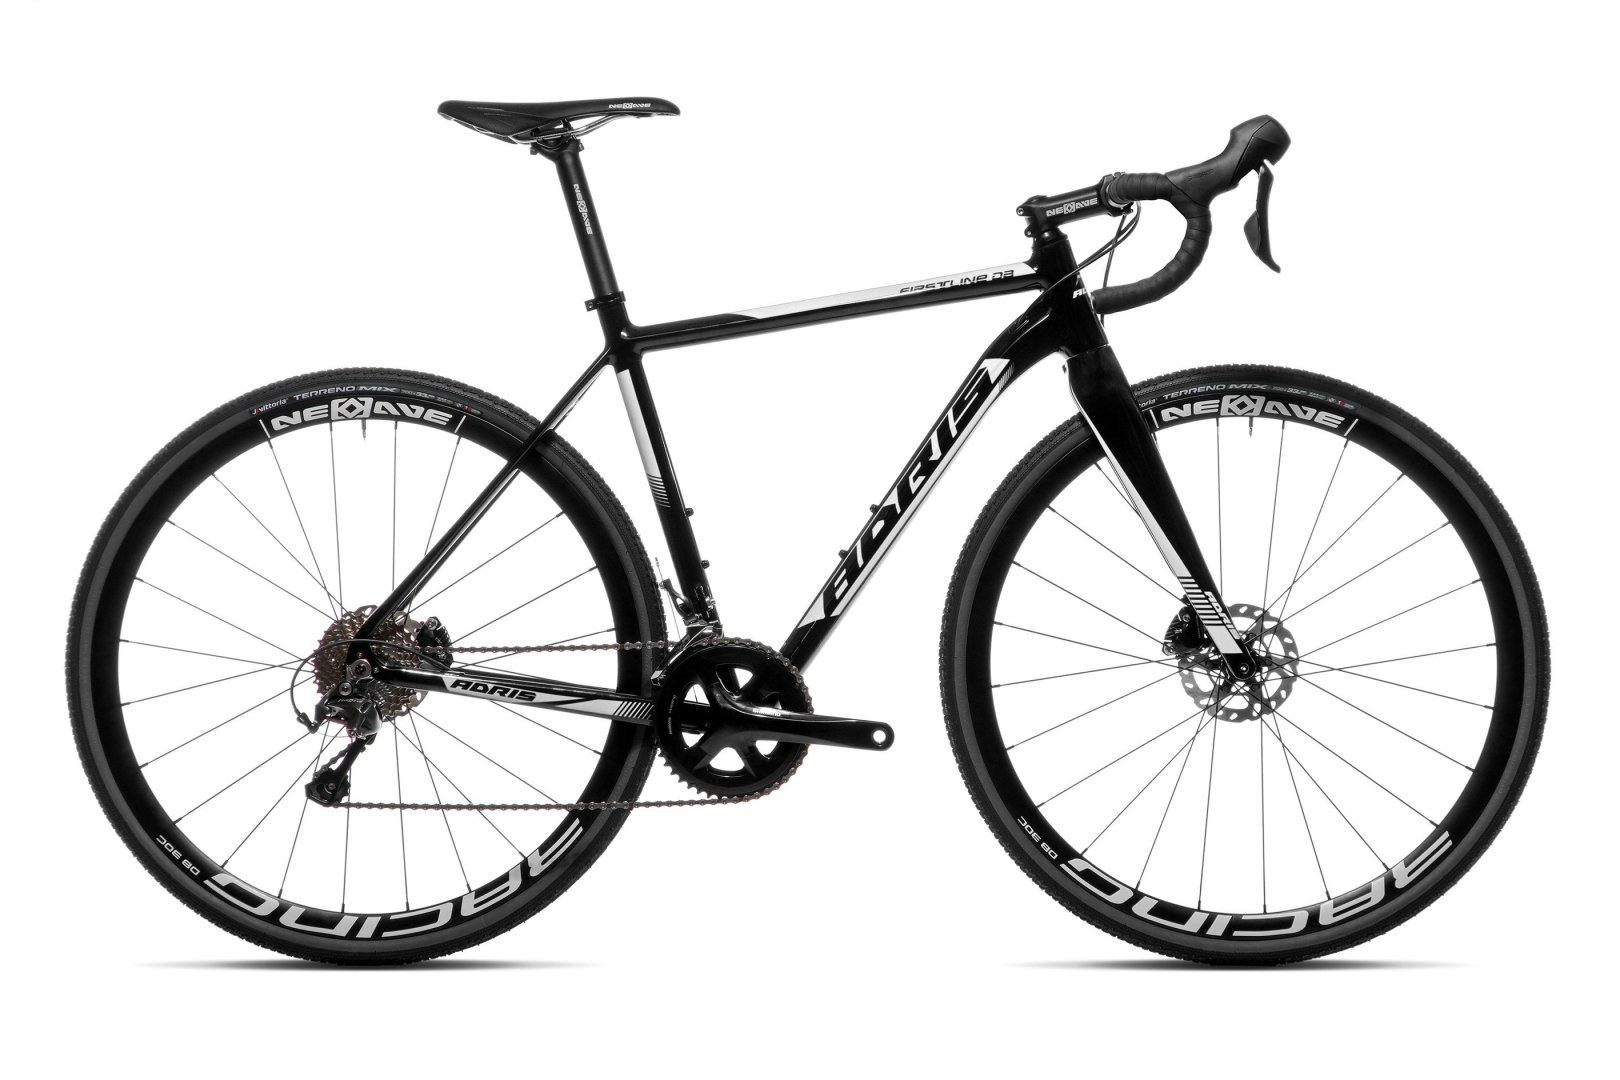 VELO ADRIS FIRSTLINE CX 3.3 DISC SHIMANO TIAGRA 10V